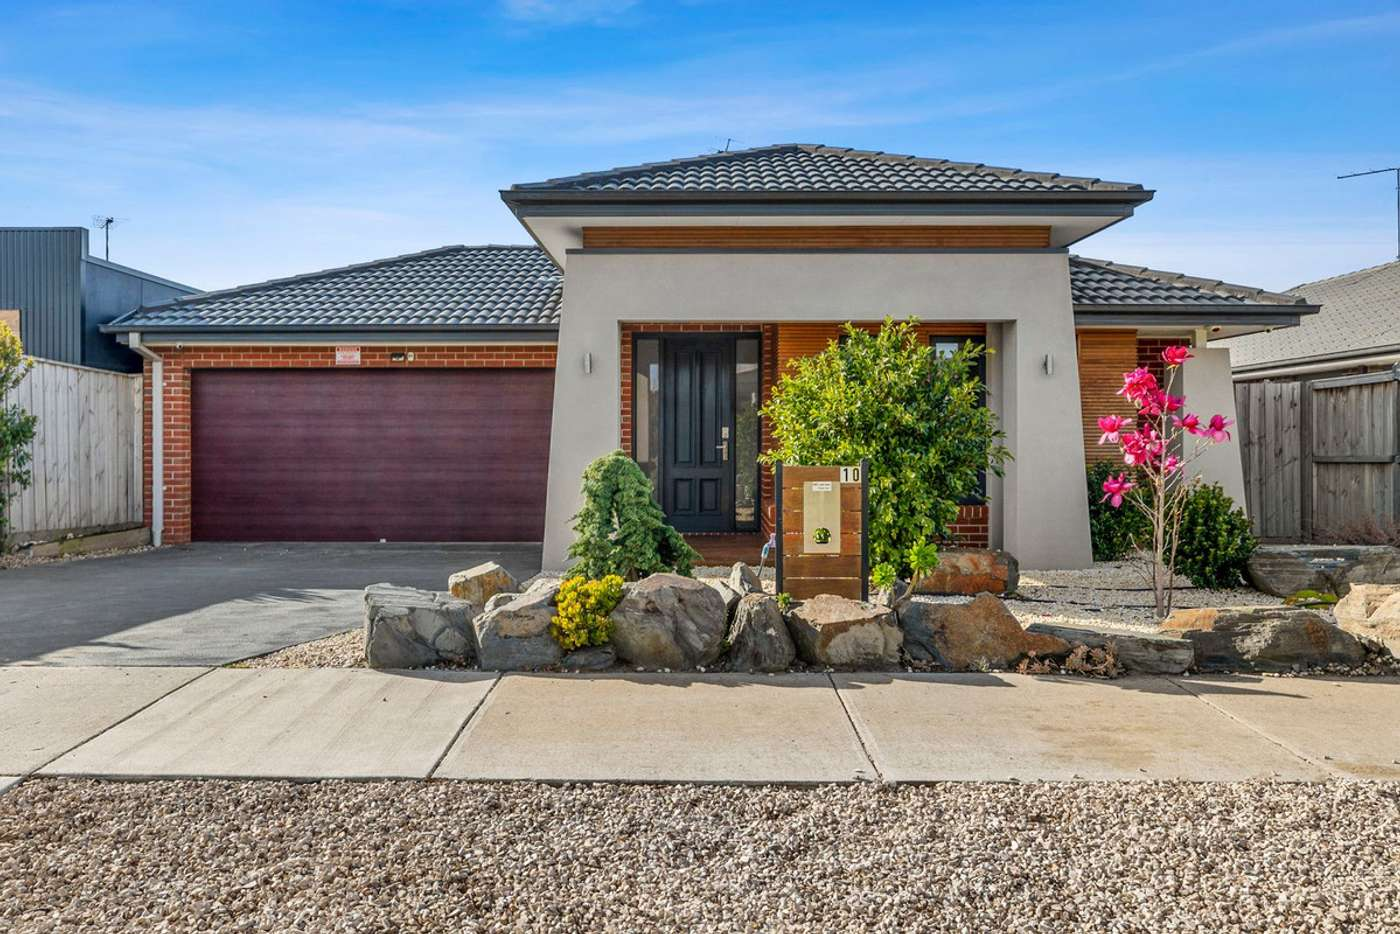 Main view of Homely house listing, 10 Roberts Street, Torquay VIC 3228